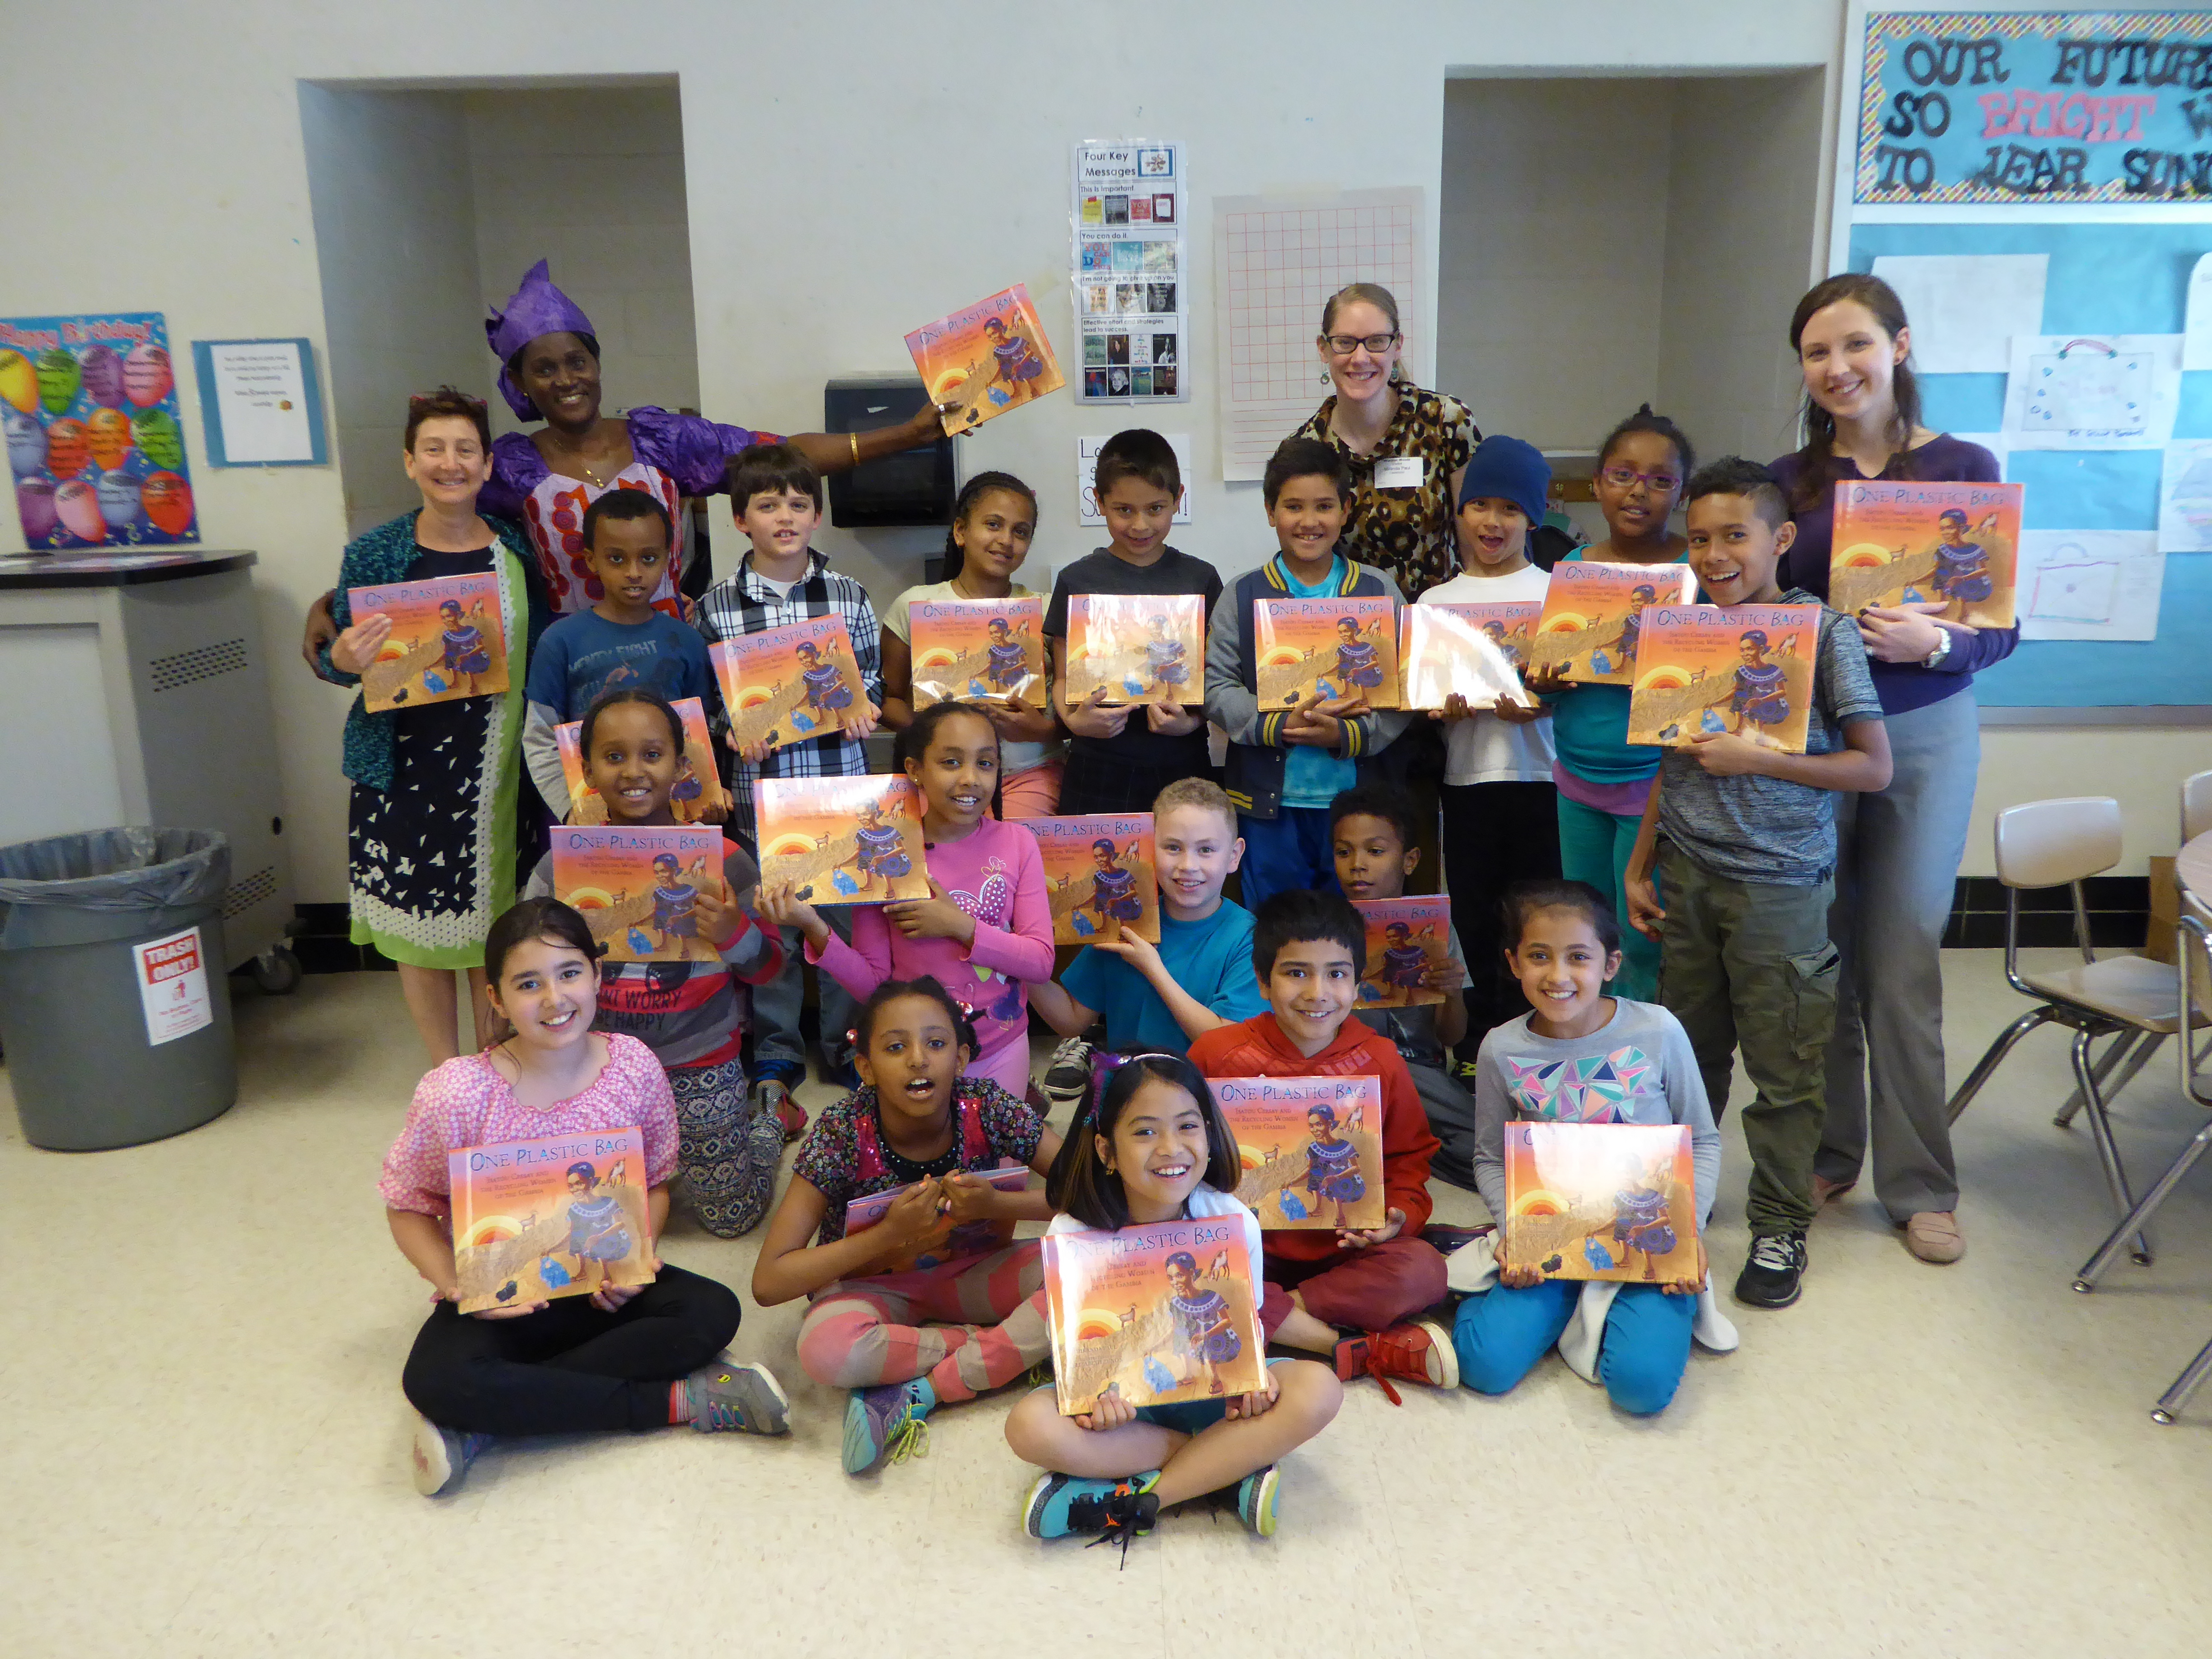 Students pose with their new books after a WNDB in the Classroom visit.